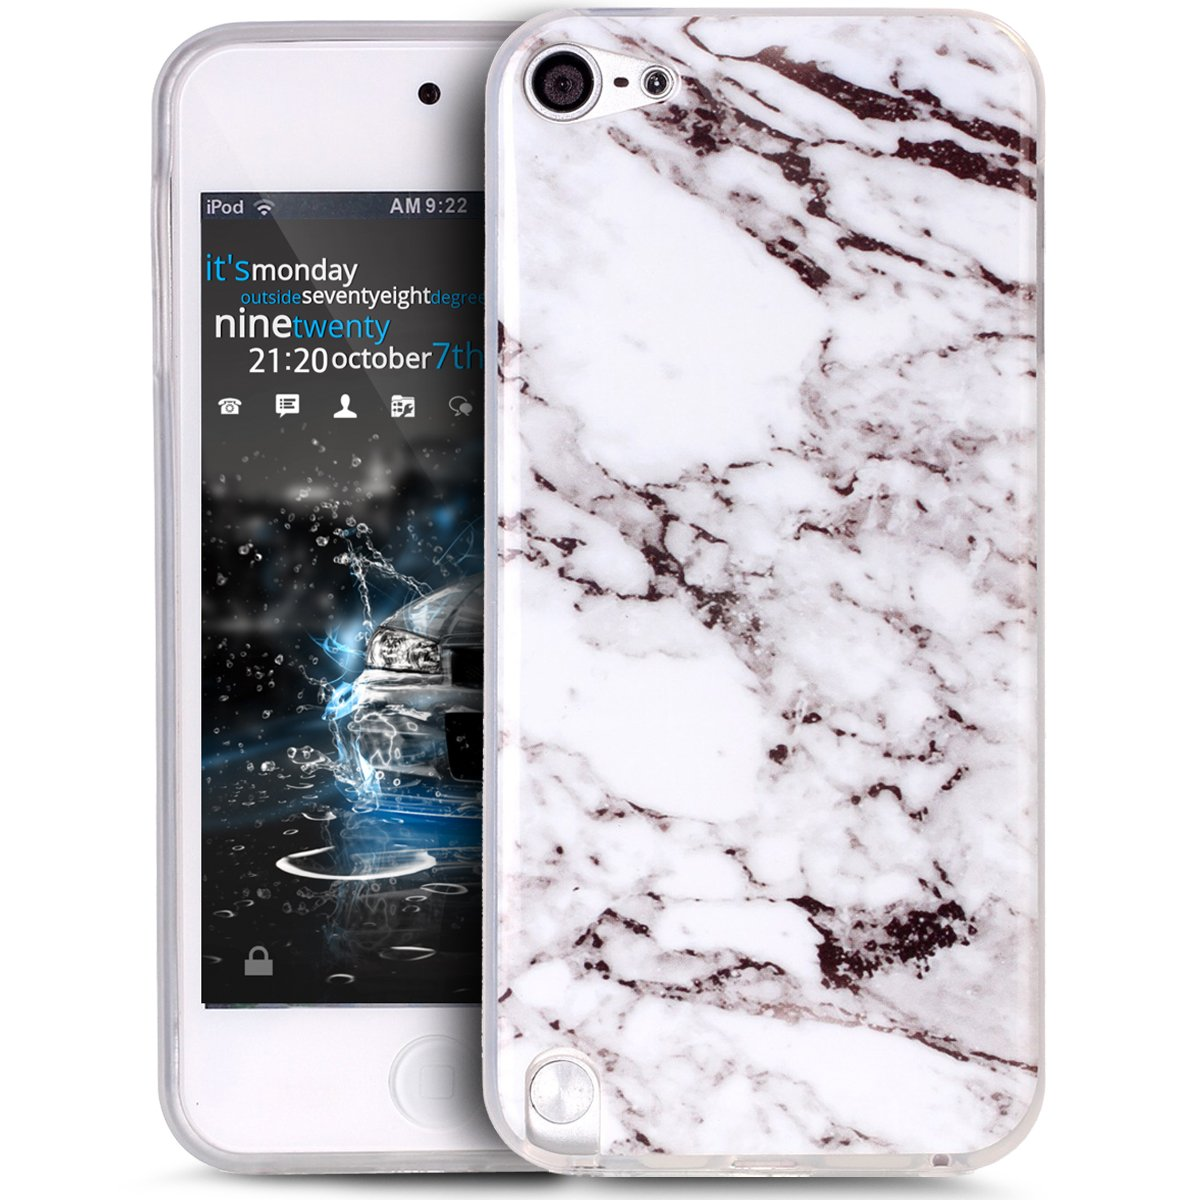 iPod Touch 6 Case,iPod Touch 5 Case,ikasus iPod Touch 5/6 case Marble,Glossy Marble Texture Ultra Slim Thin Flexible Soft Silicone TPU Bumper Rubber Protective Case for iPod Touch 6 / 5, White Black